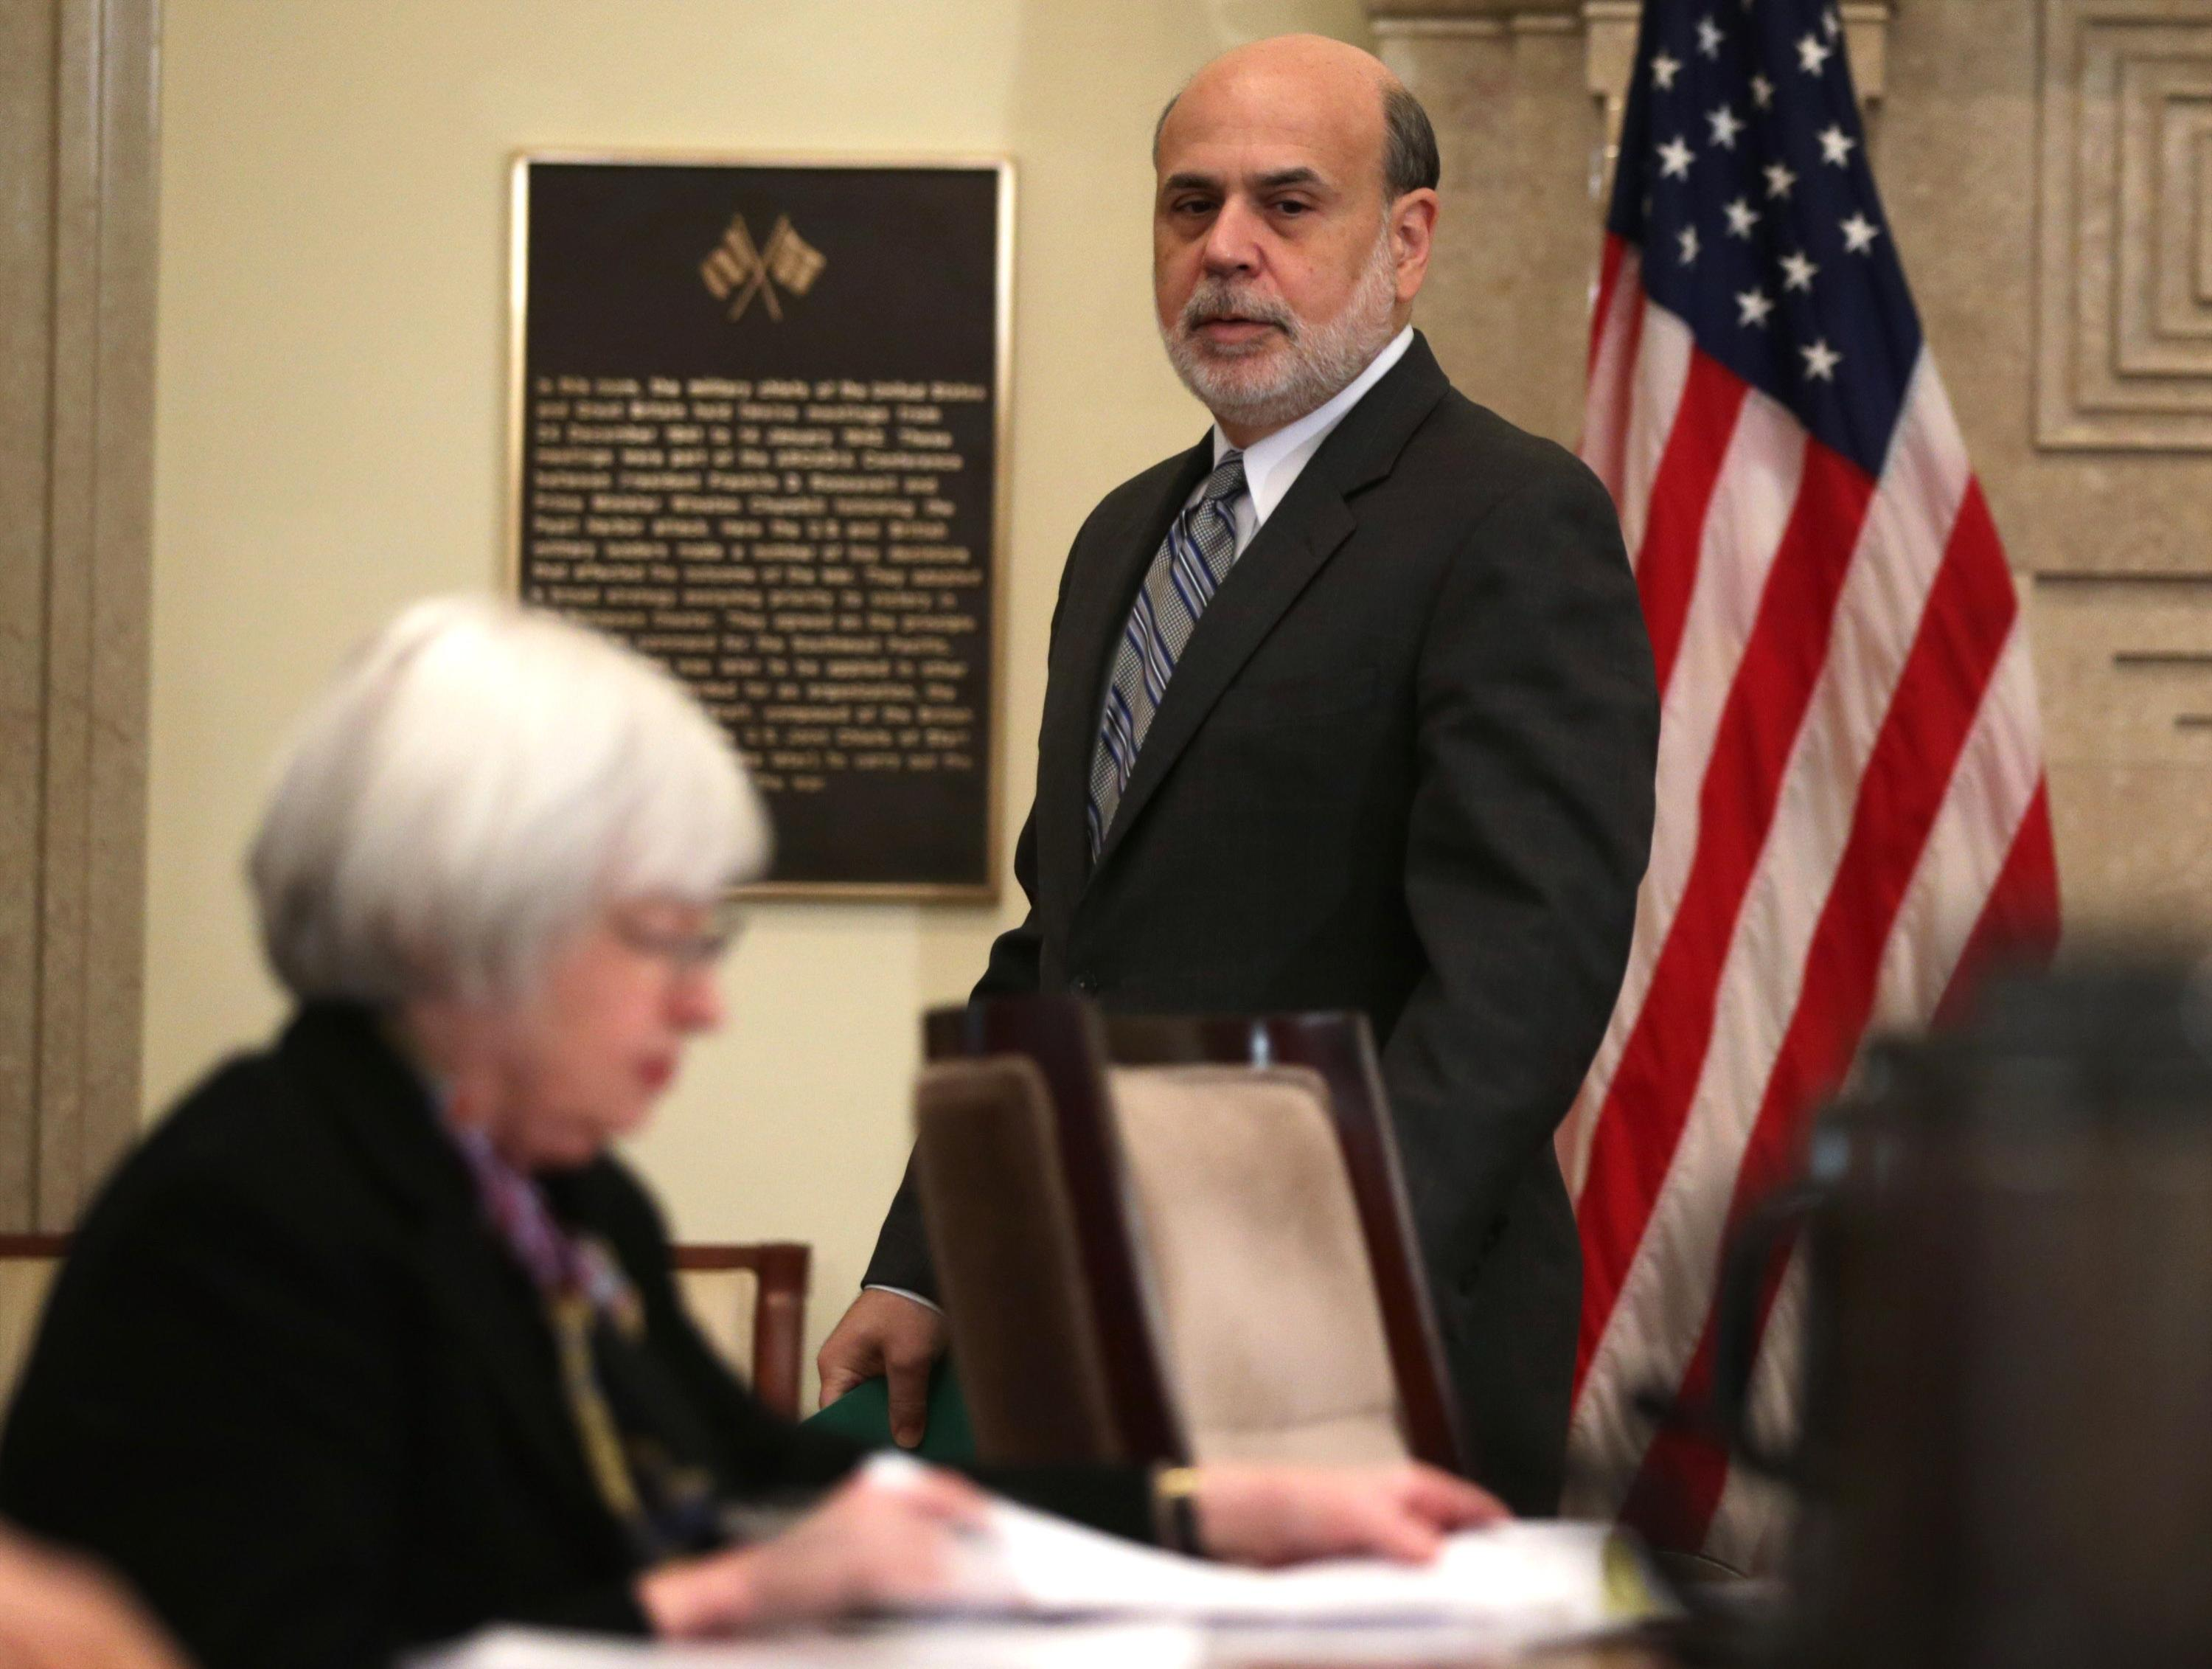 Then Fed Chair Ben Bernanke ushered in an era of ultra easy monetary policy to save the economy. With the economy and banking system in much better shape, current Fed Chair Janet Yellen is doing the opposite.